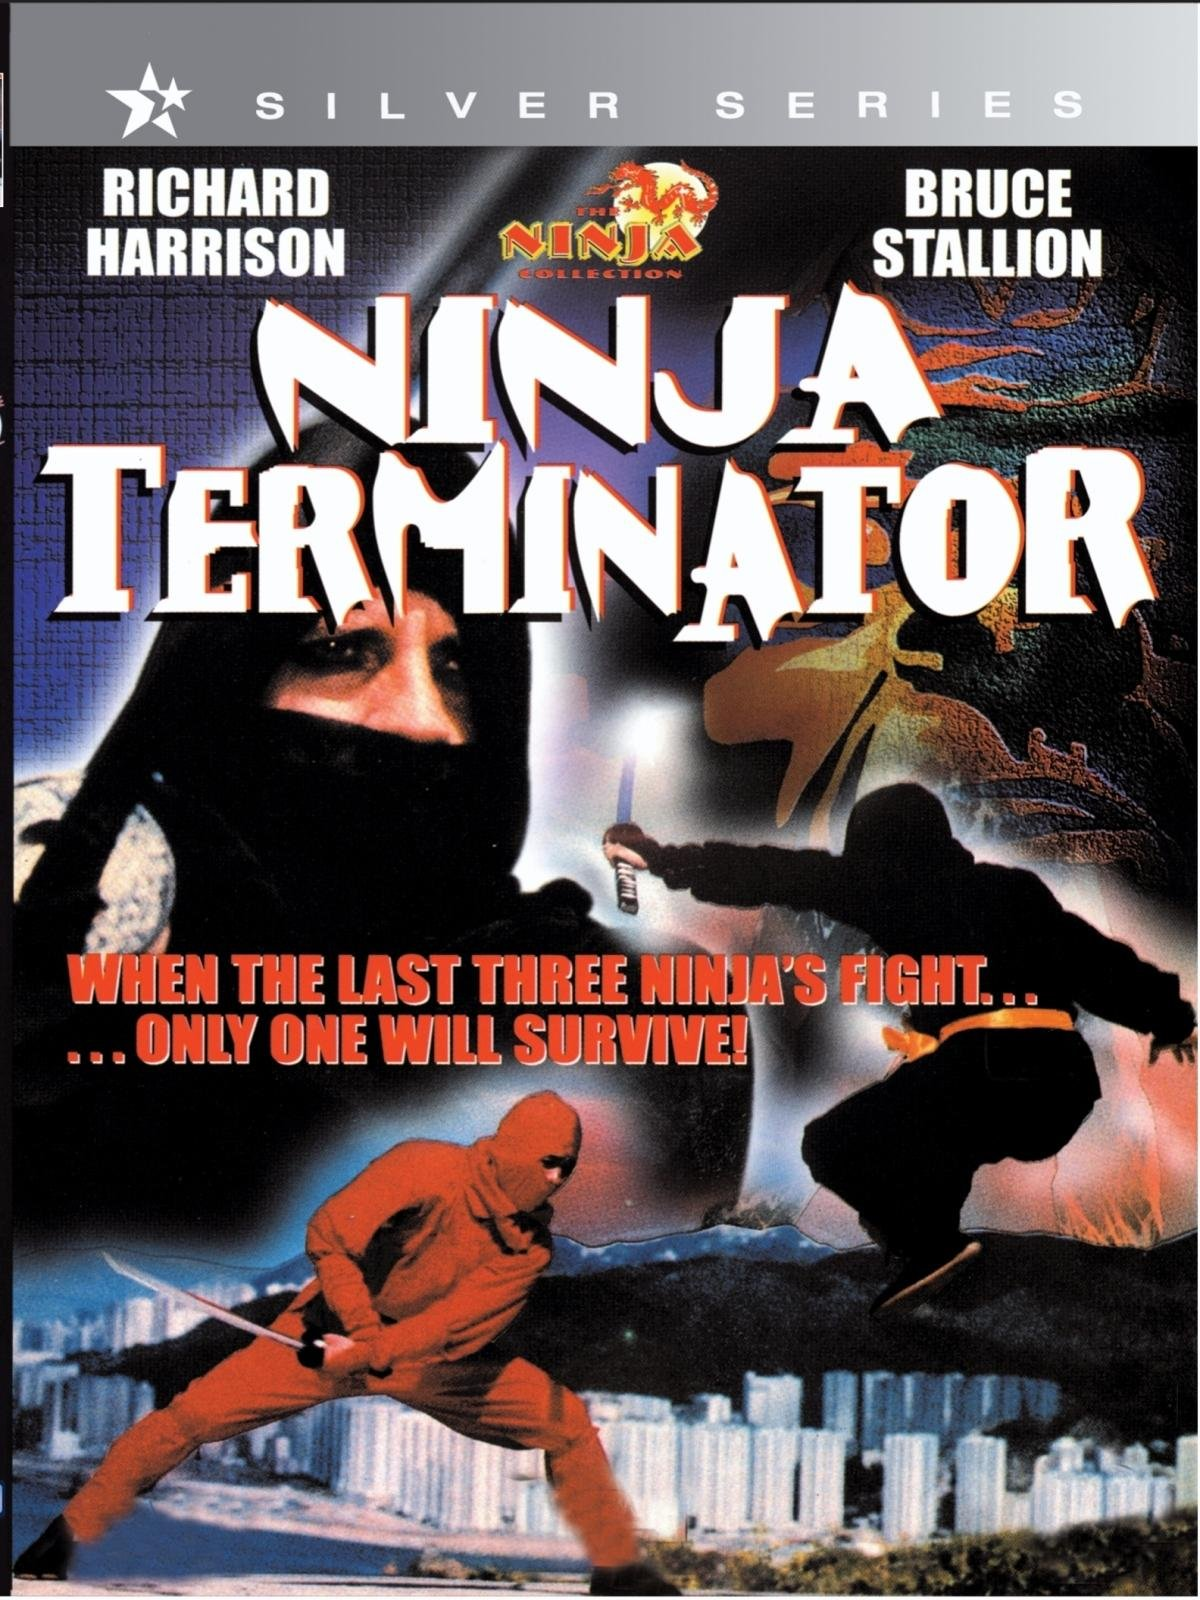 Amazon.com: Ninja Terminator: Richard Harrison, Wong Cheng ...